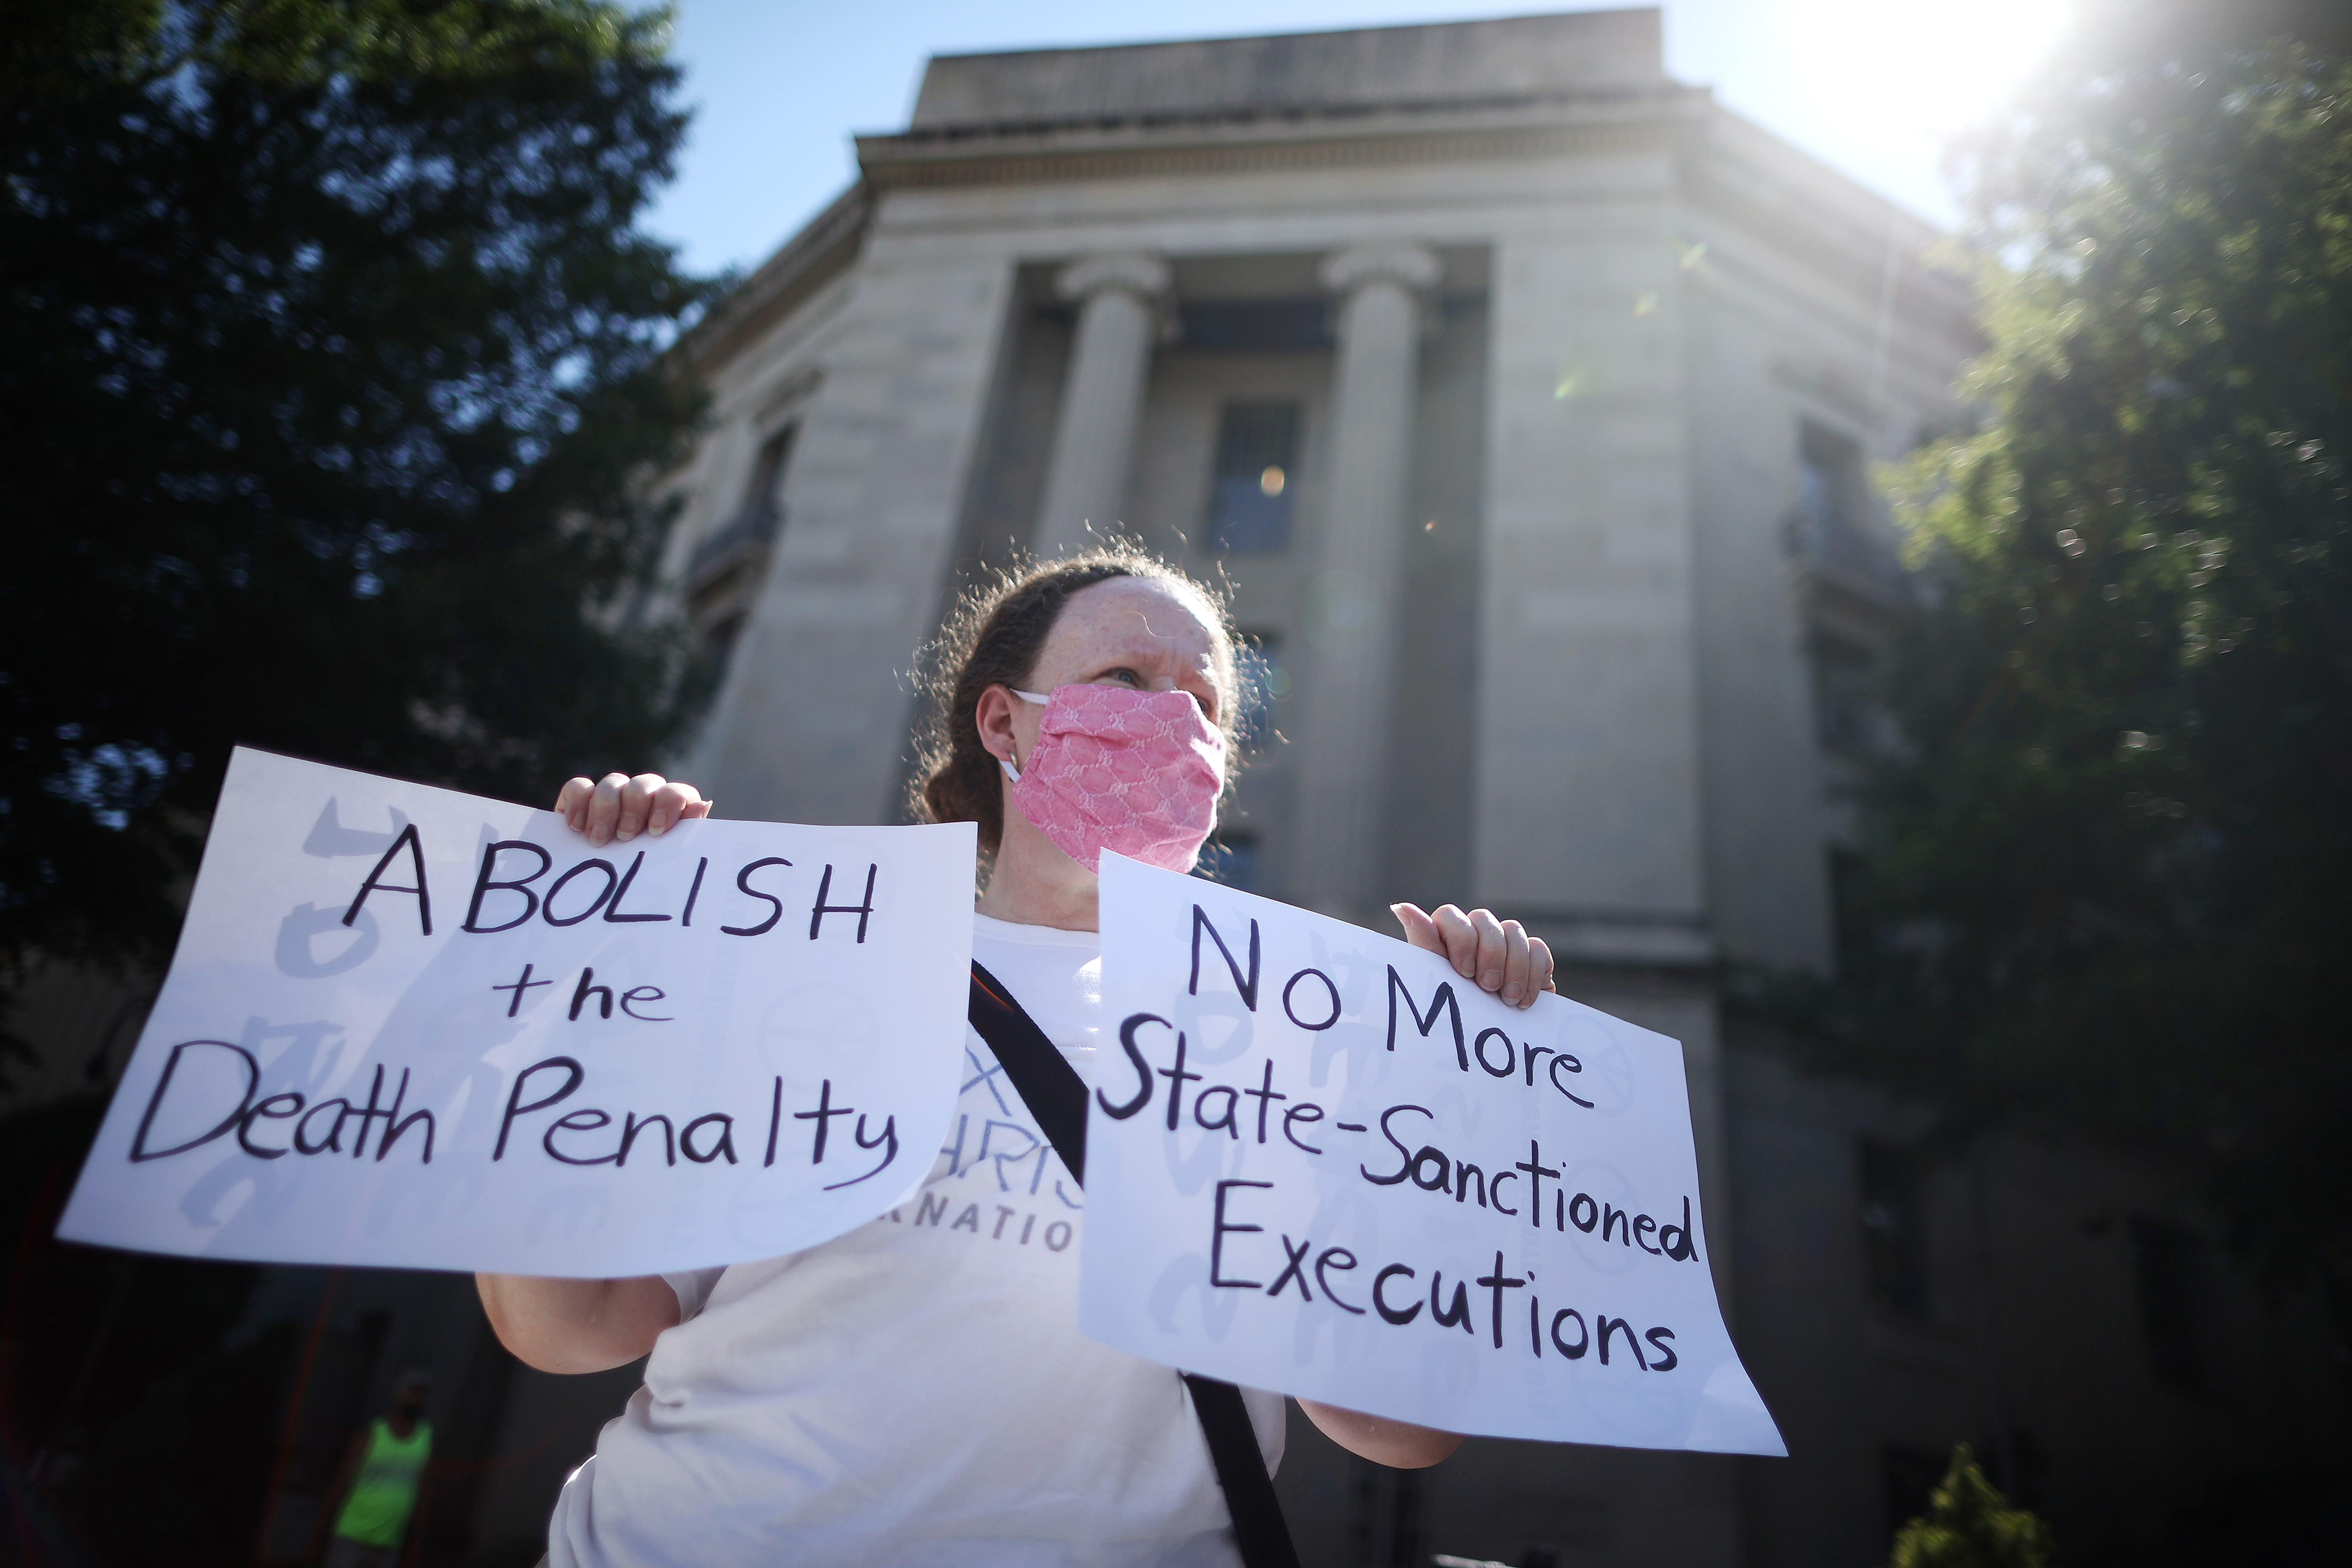 Anti-death penalty activist Judy Coode demonstrates in front of the U.S. Justice Department on July 13, 2020 in Washington, D.C.